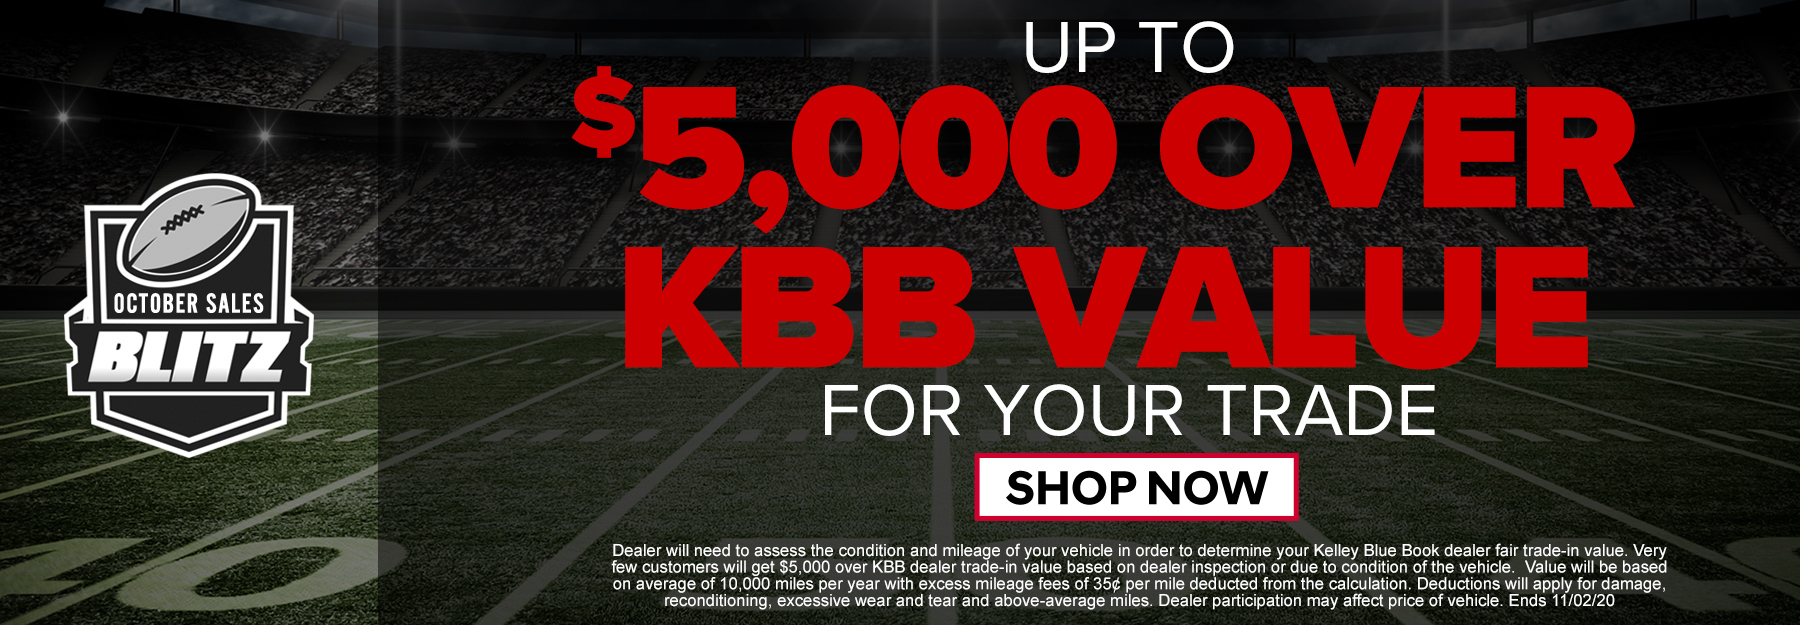 up to $5,000 over KBB for your trade